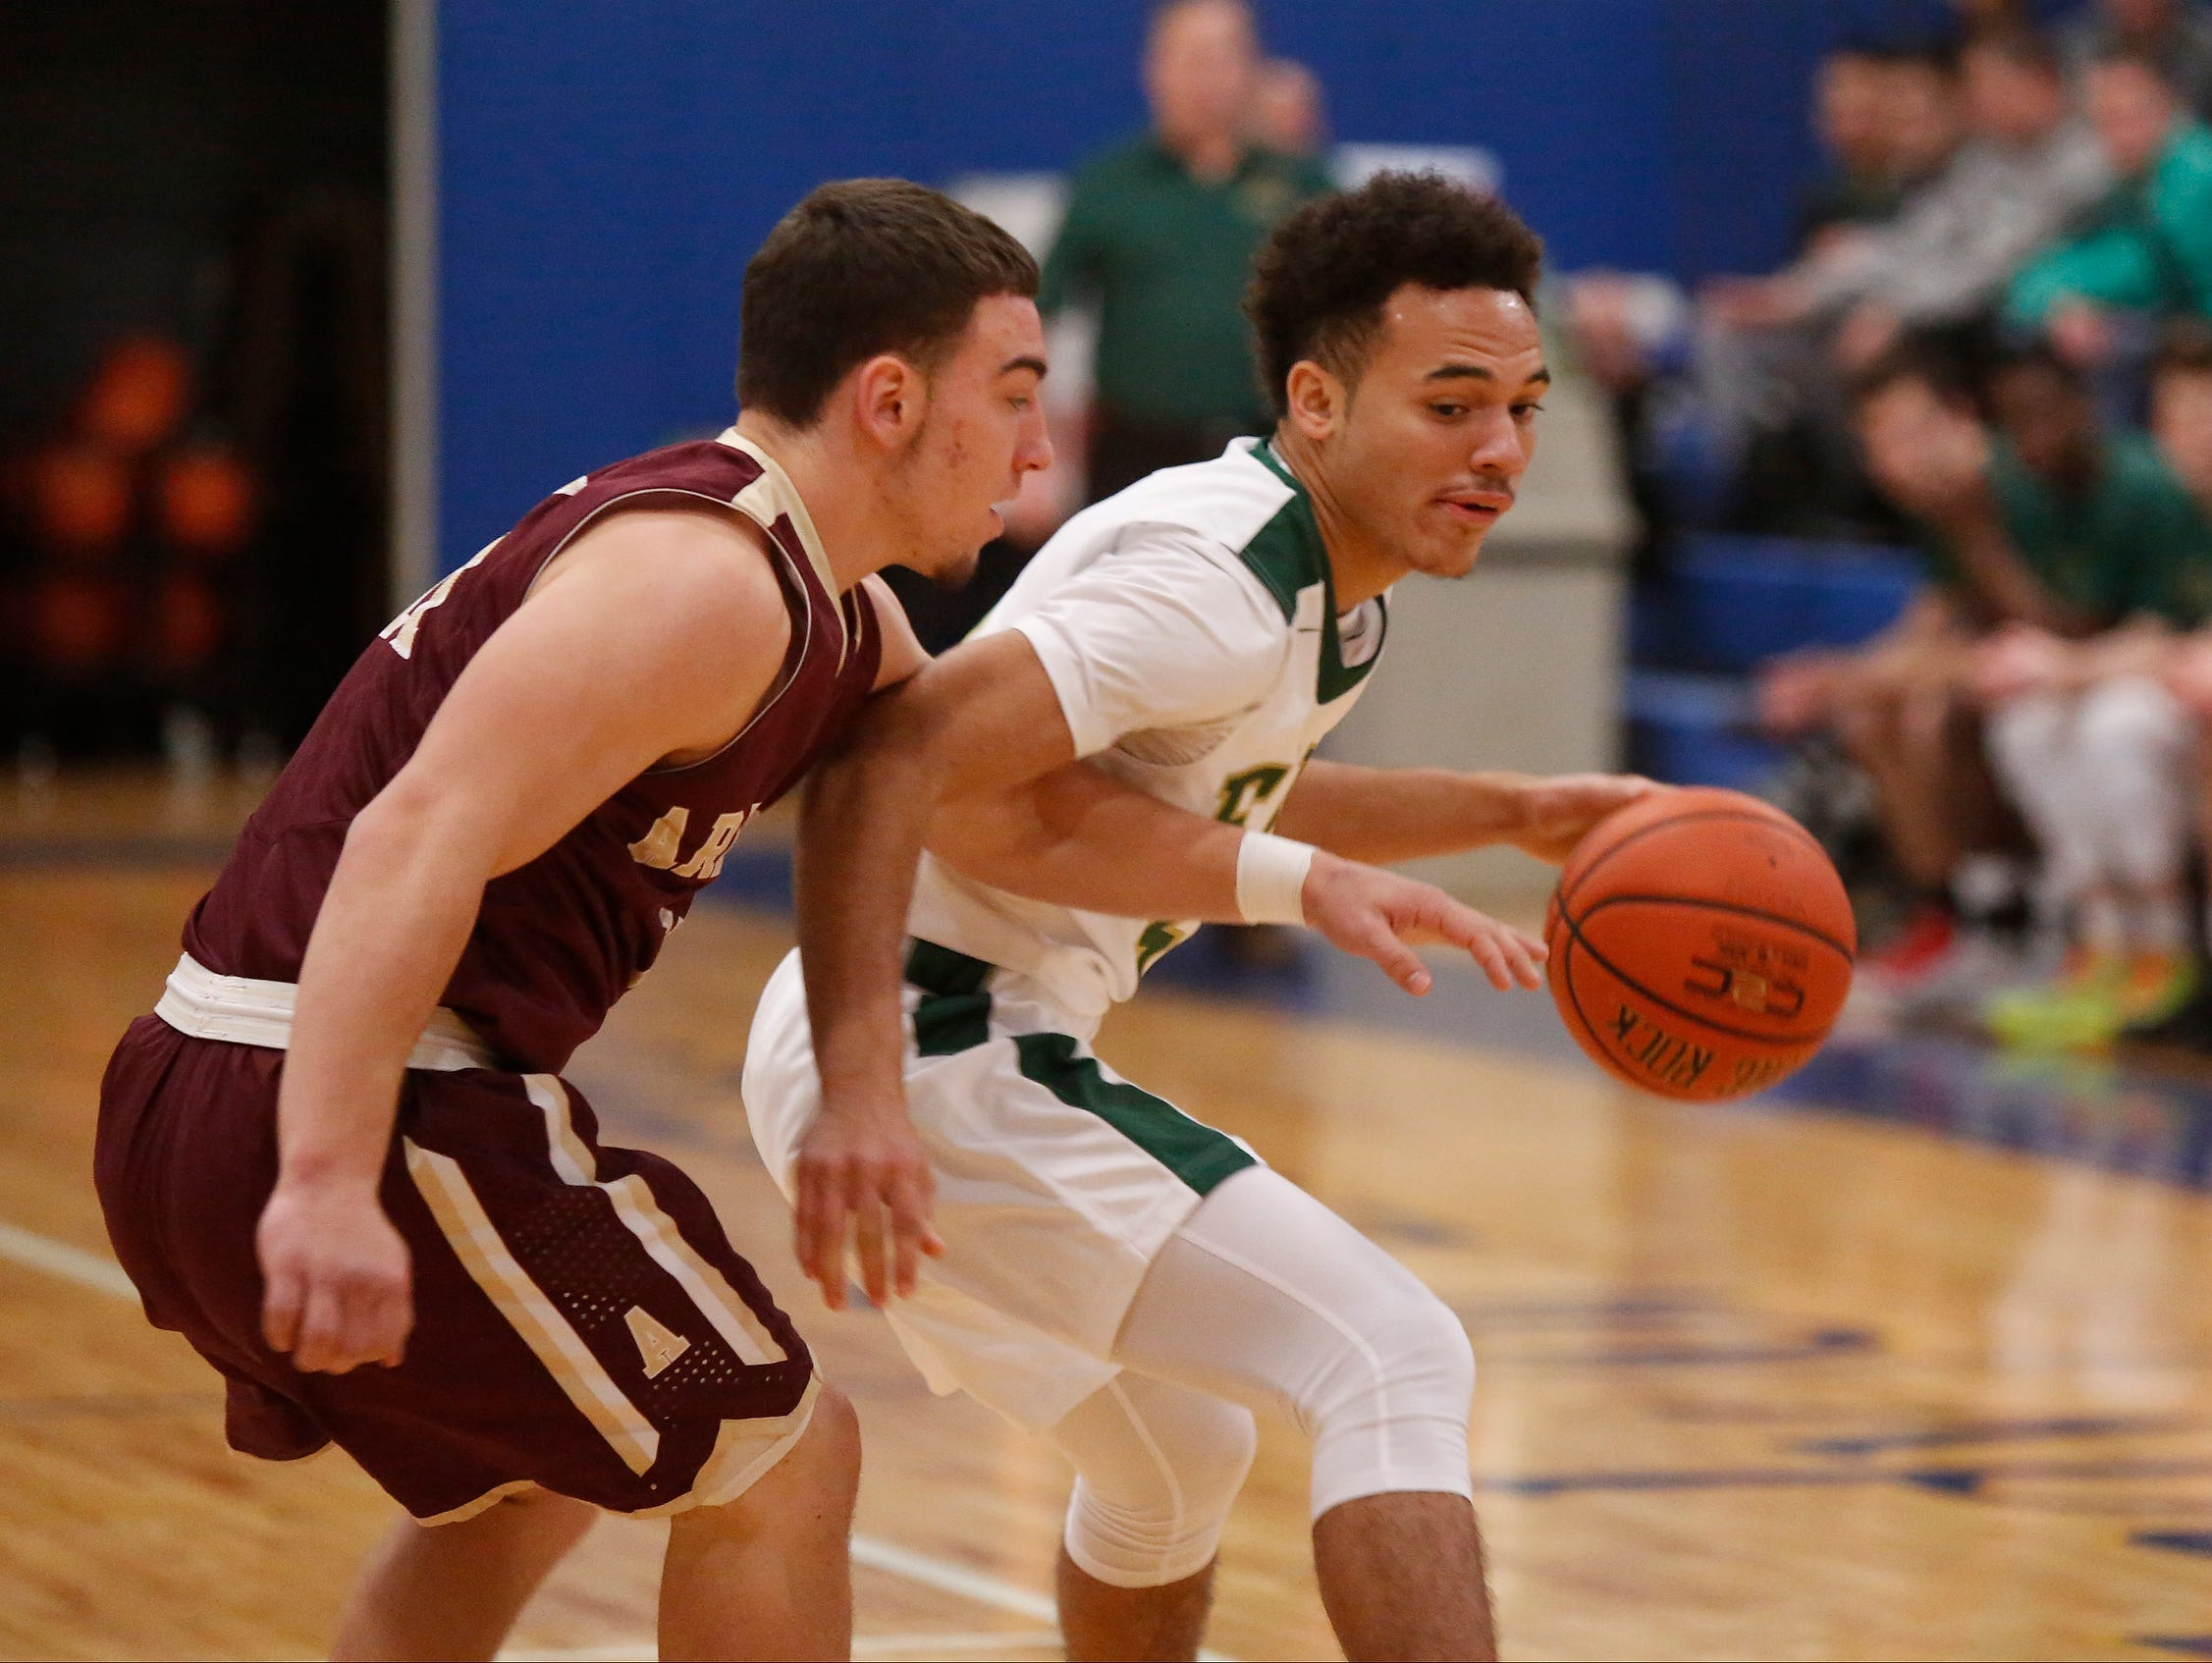 Arlington's Zac Dingee guards a Franklin D. Roosevelt player during a game in the Duane Davis Memorial Tournament on Dec. 31.